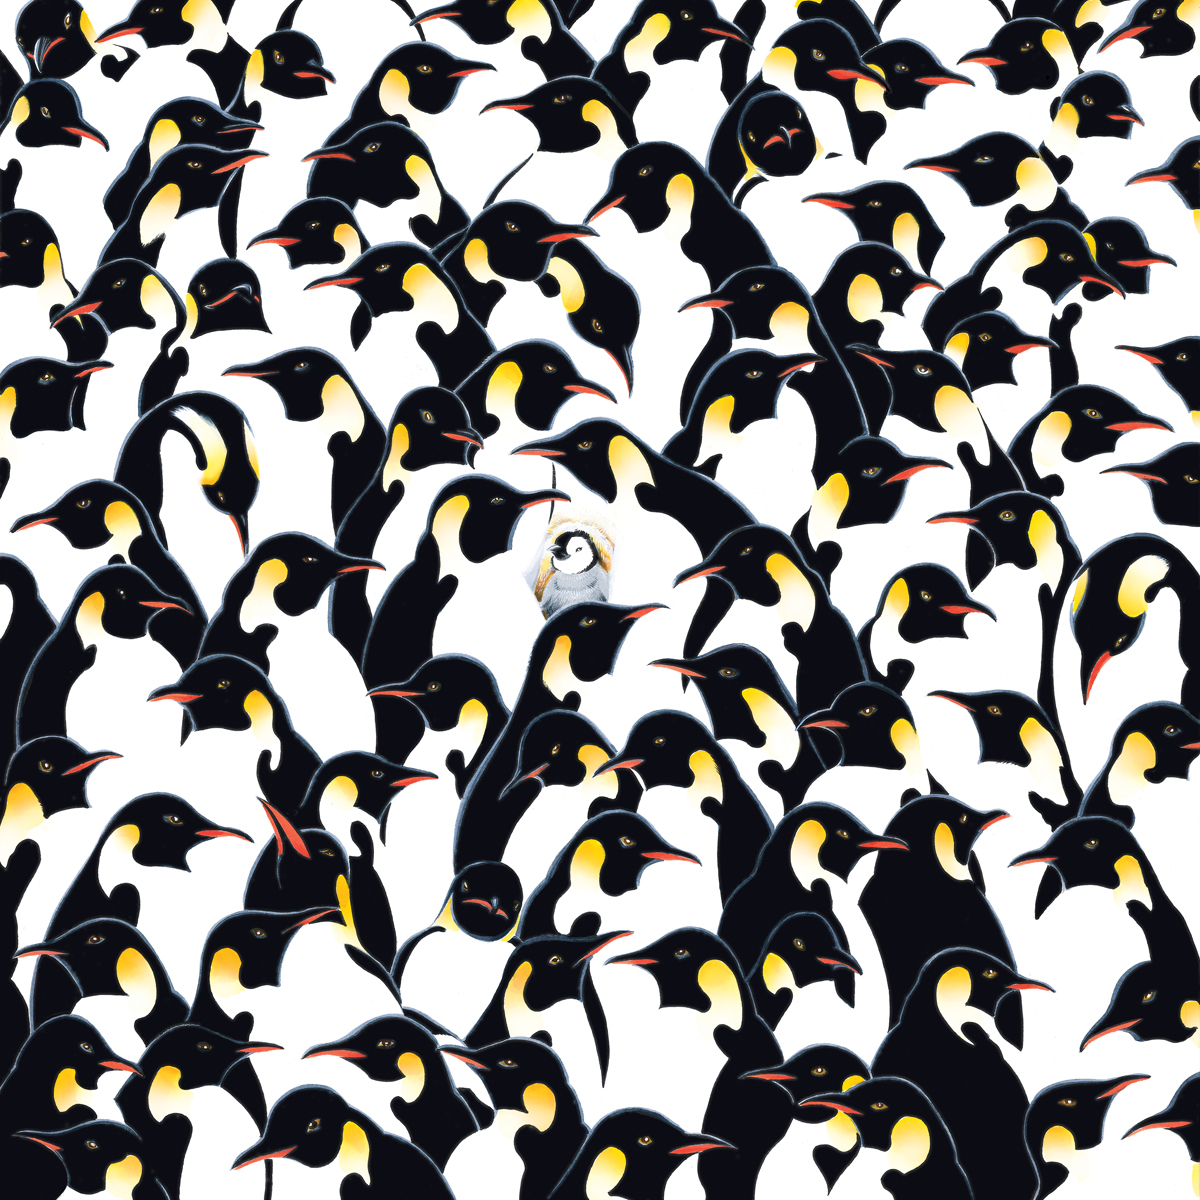 Penguins world's most difficult jigsaw puzzle double sided turned 90 degrees